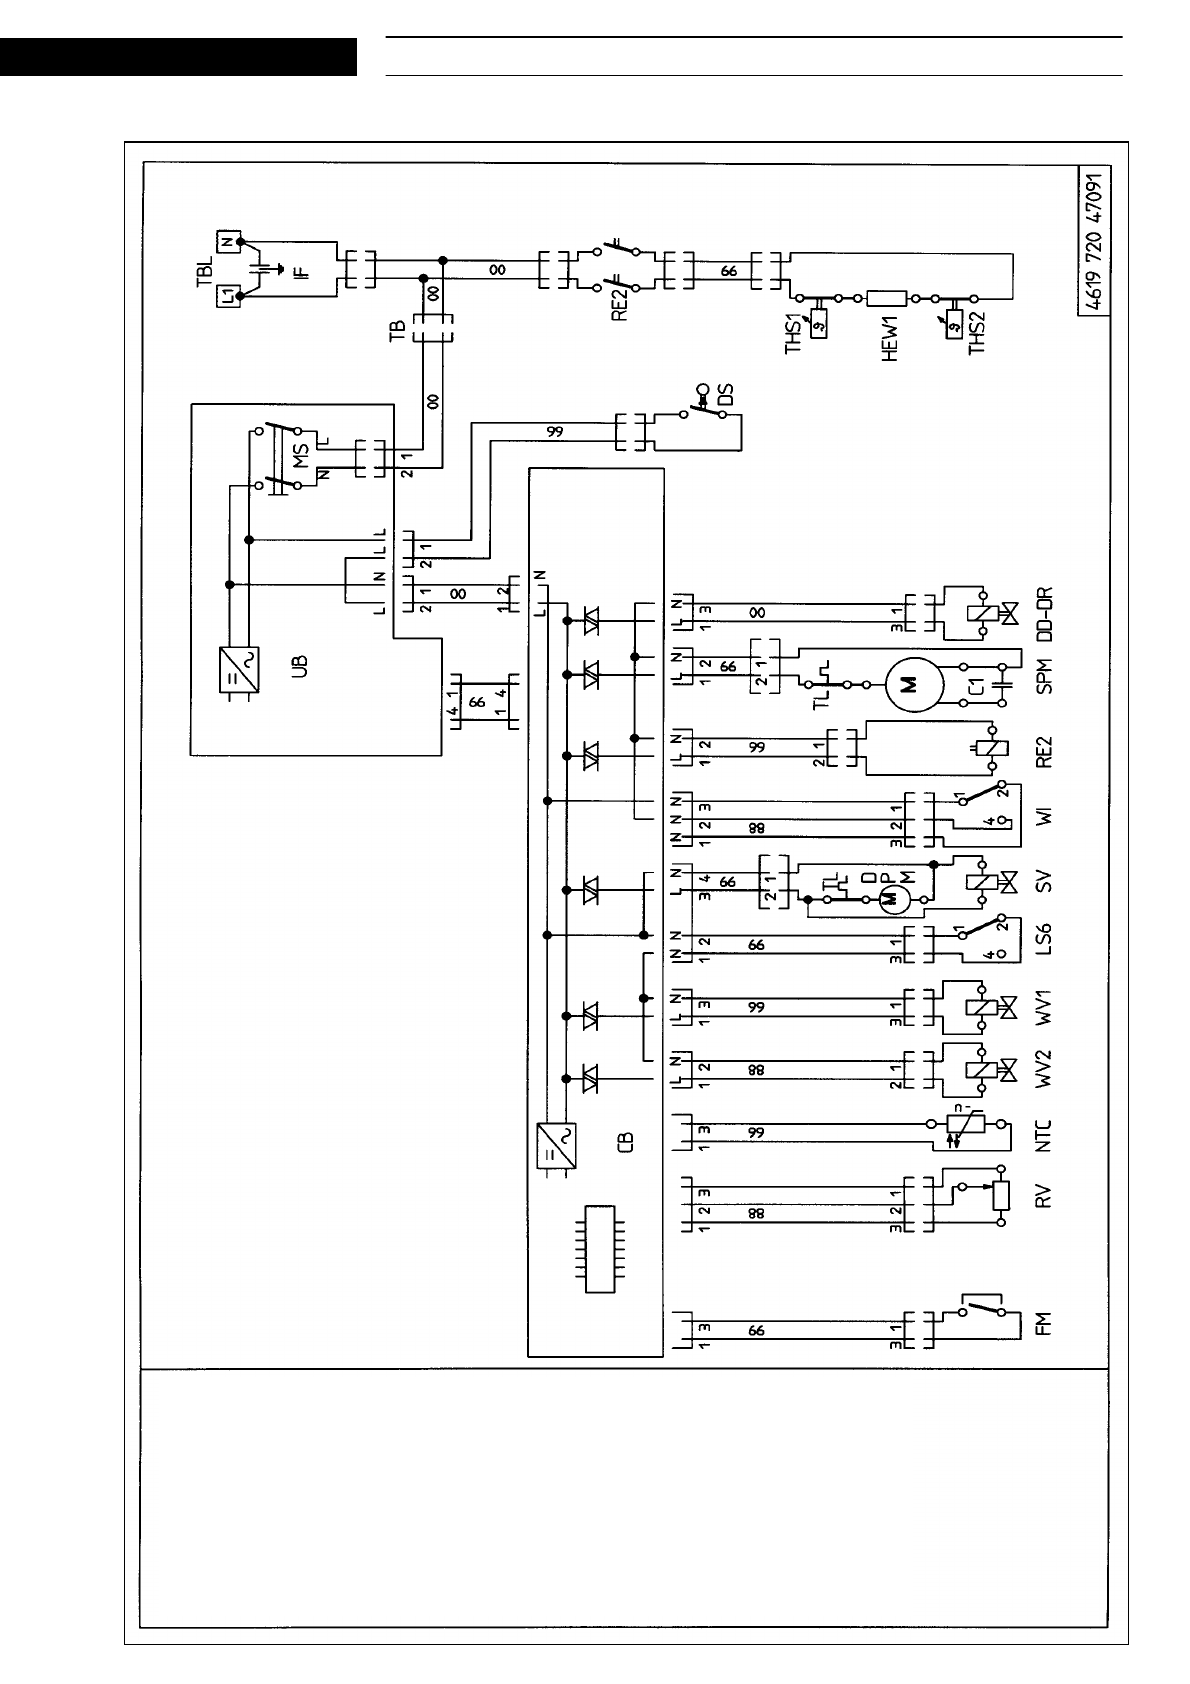 c873f67a 3bb5 4f53 b66b bdc2b0c4d30d bg9 whirlpool dishwasher wiring diagram 28 images whirlpool whirlpool dishwasher wiring diagram at pacquiaovsvargaslive.co